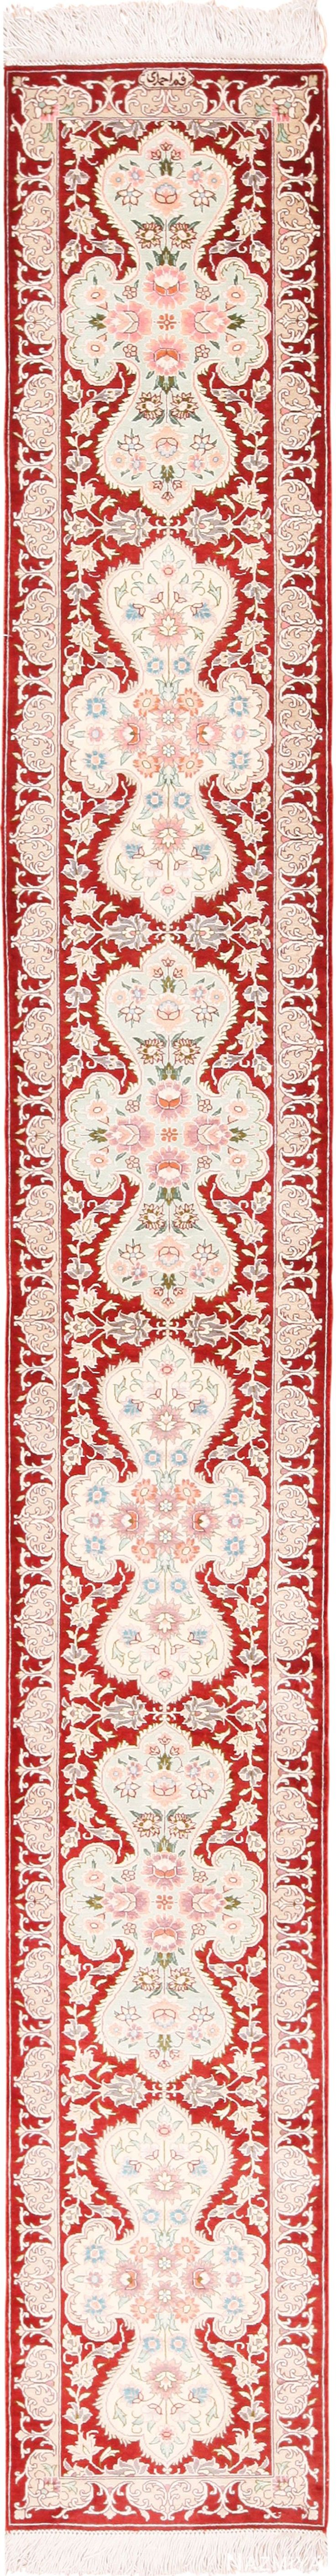 View this beautiful long and narrow vintage red Persian silk Qum rug runner #49603 which is available for sale at Nazmiyal Antique Rugs in New York City.